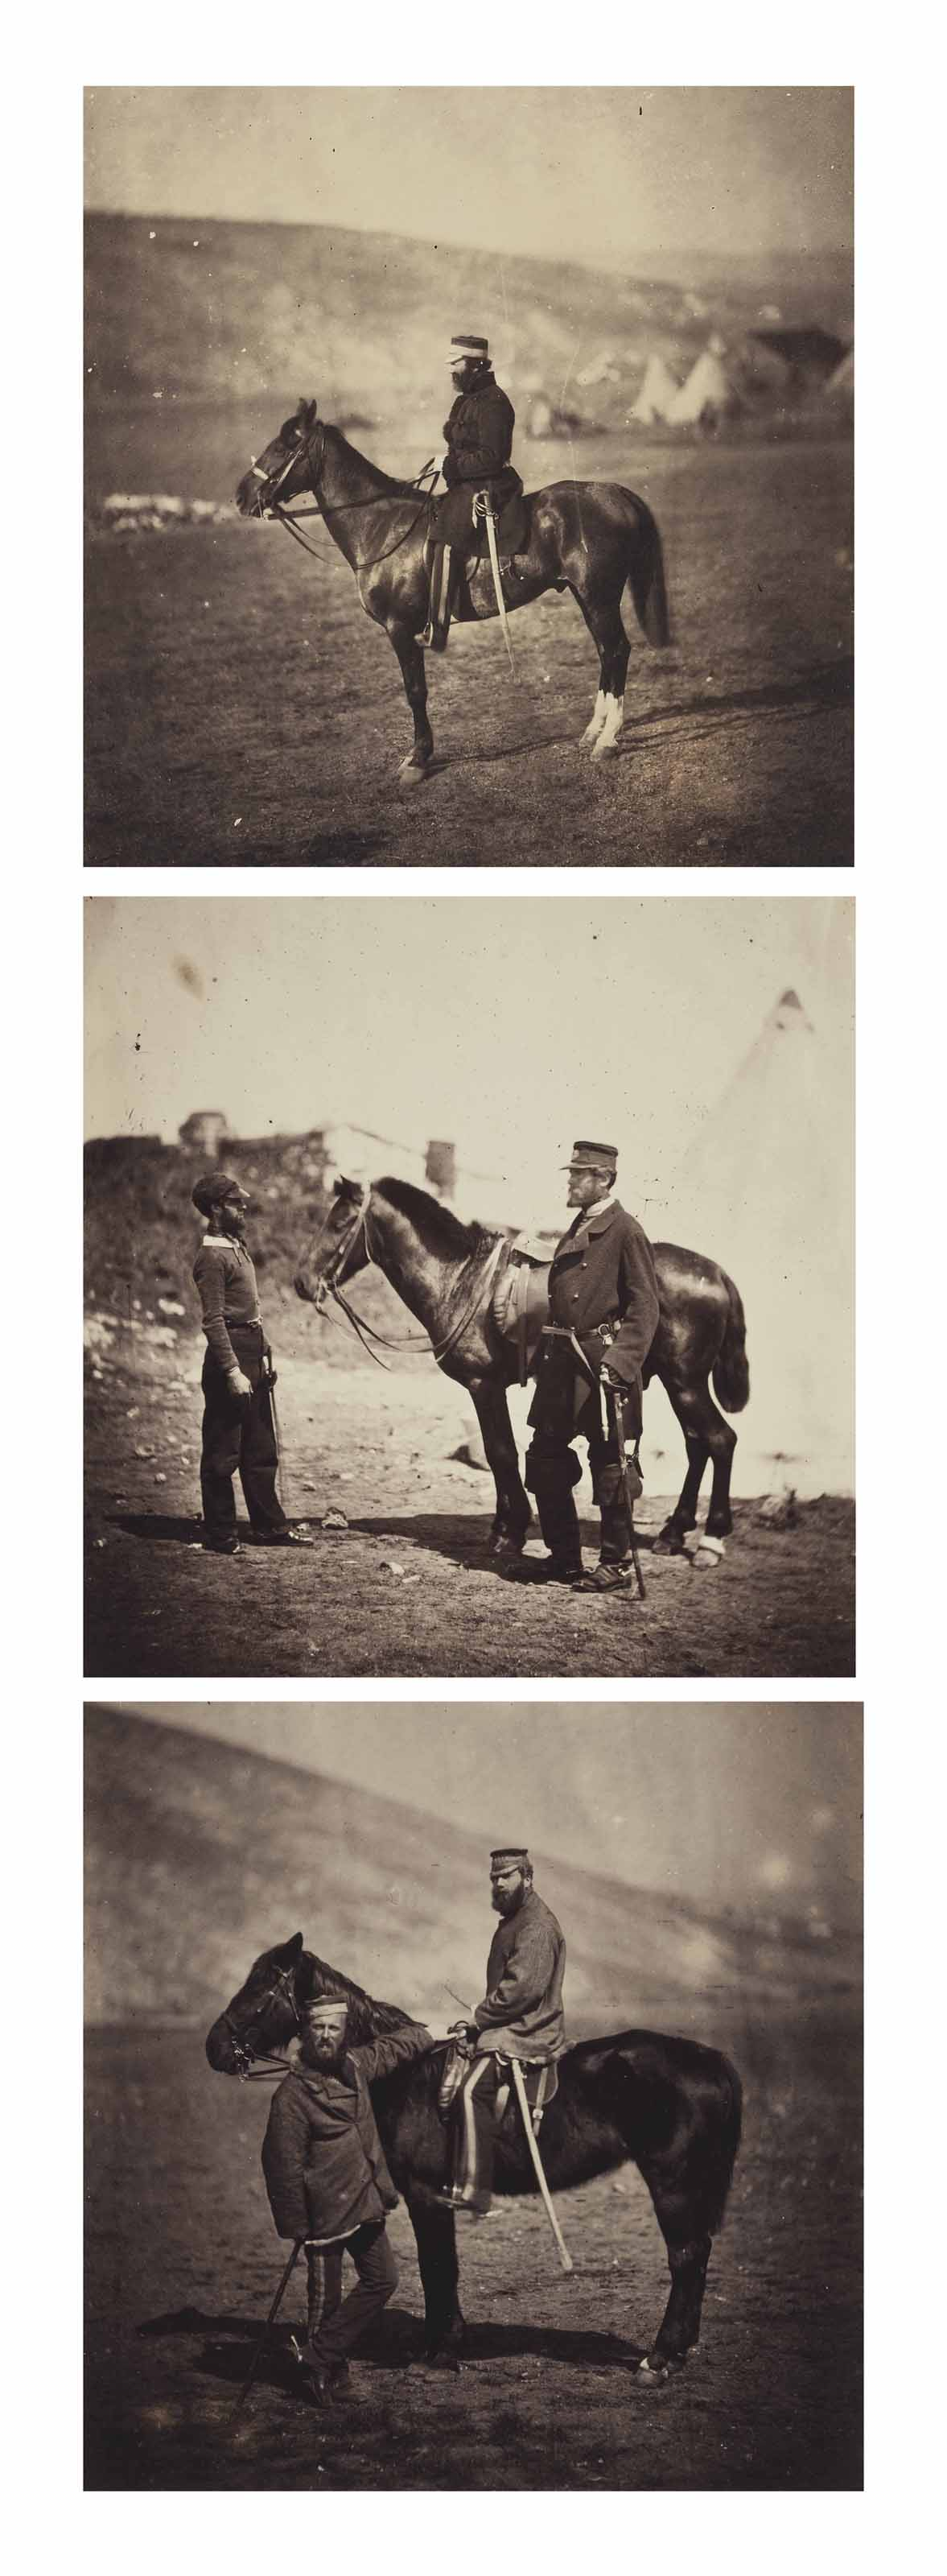 Images from the Crimean War, 1856